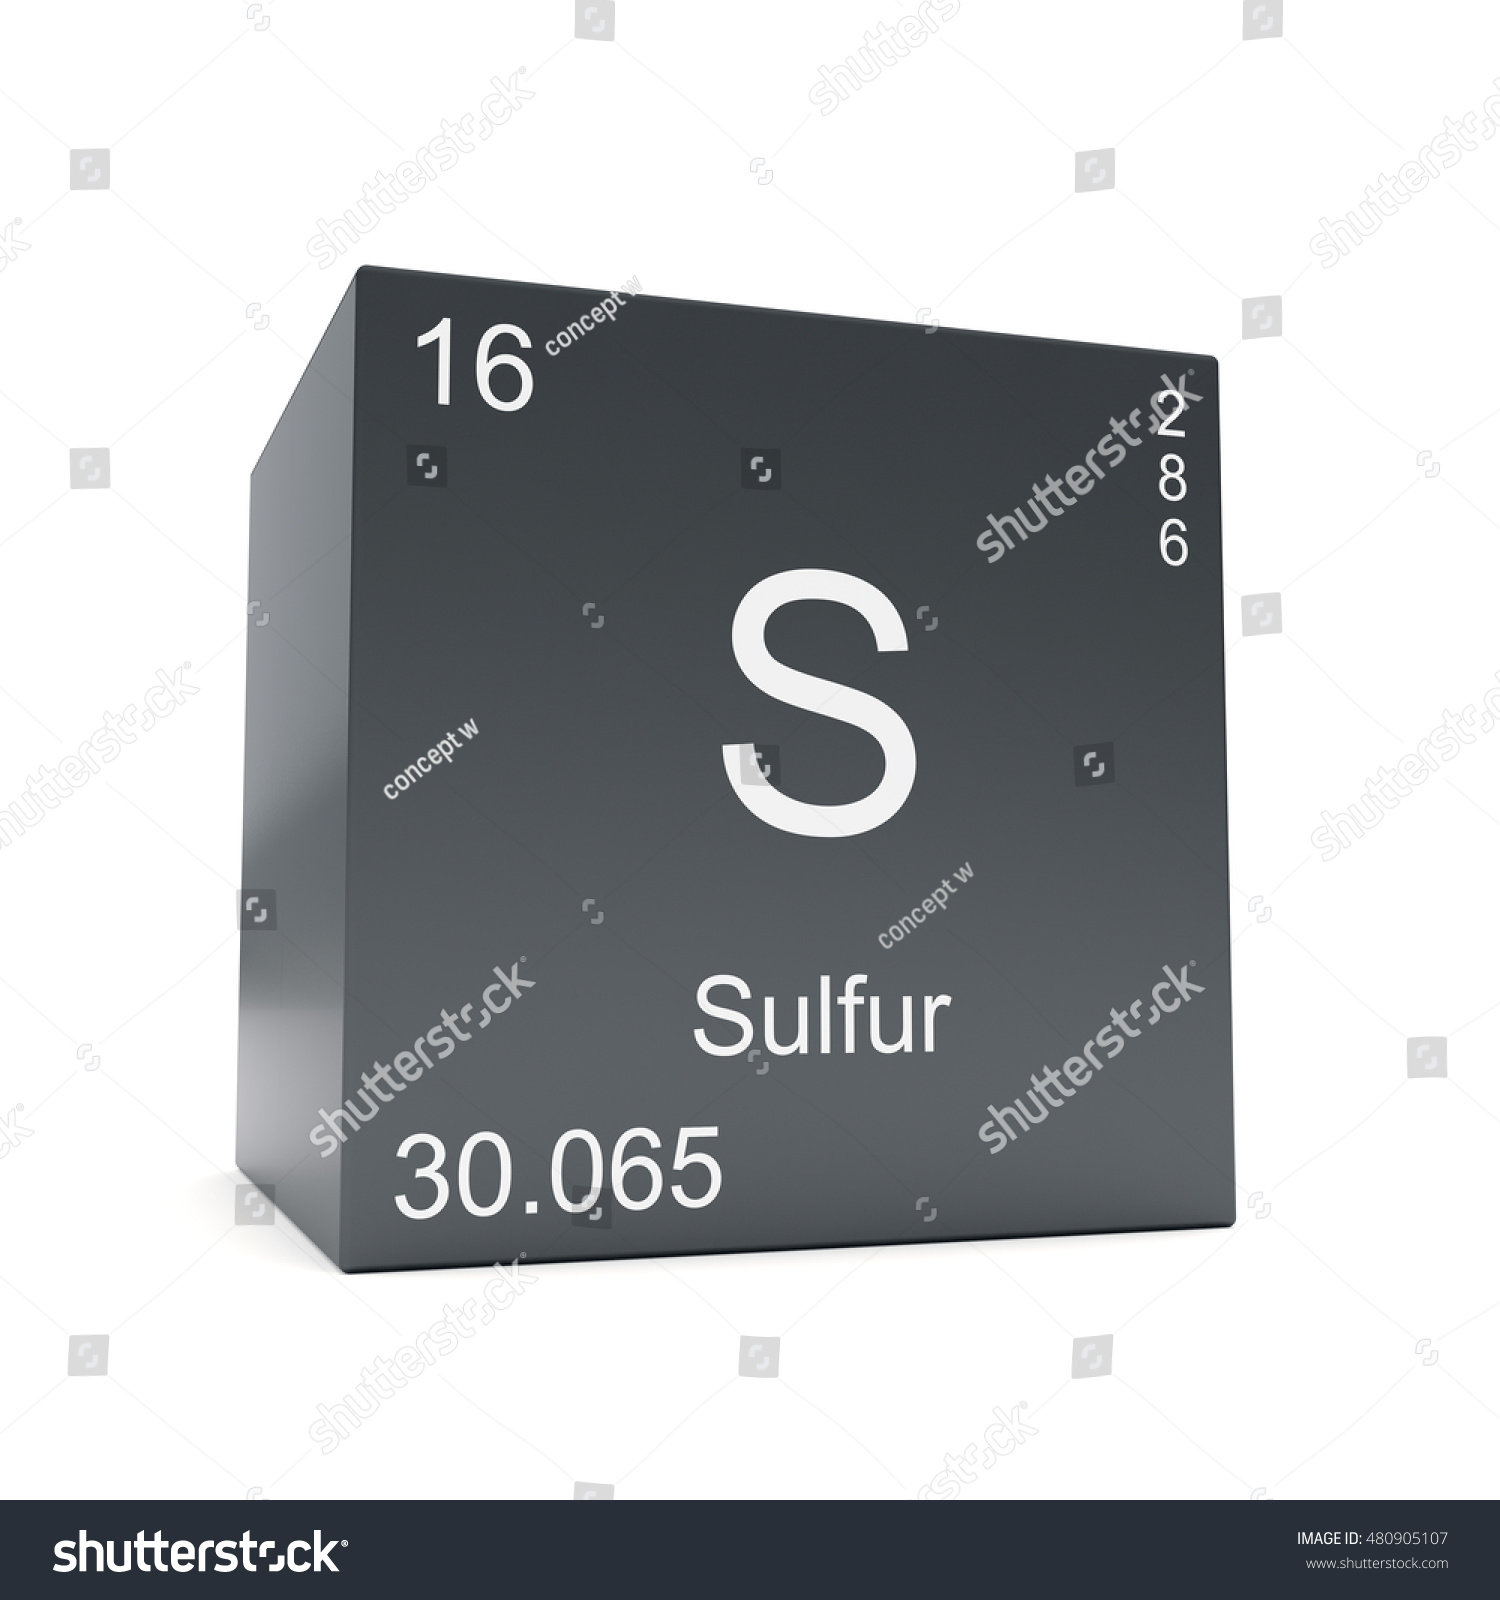 Sulfur chemical element symbol periodic table stock illustration sulfur chemical element symbol from the periodic table displayed on black cube 3d render buycottarizona Image collections